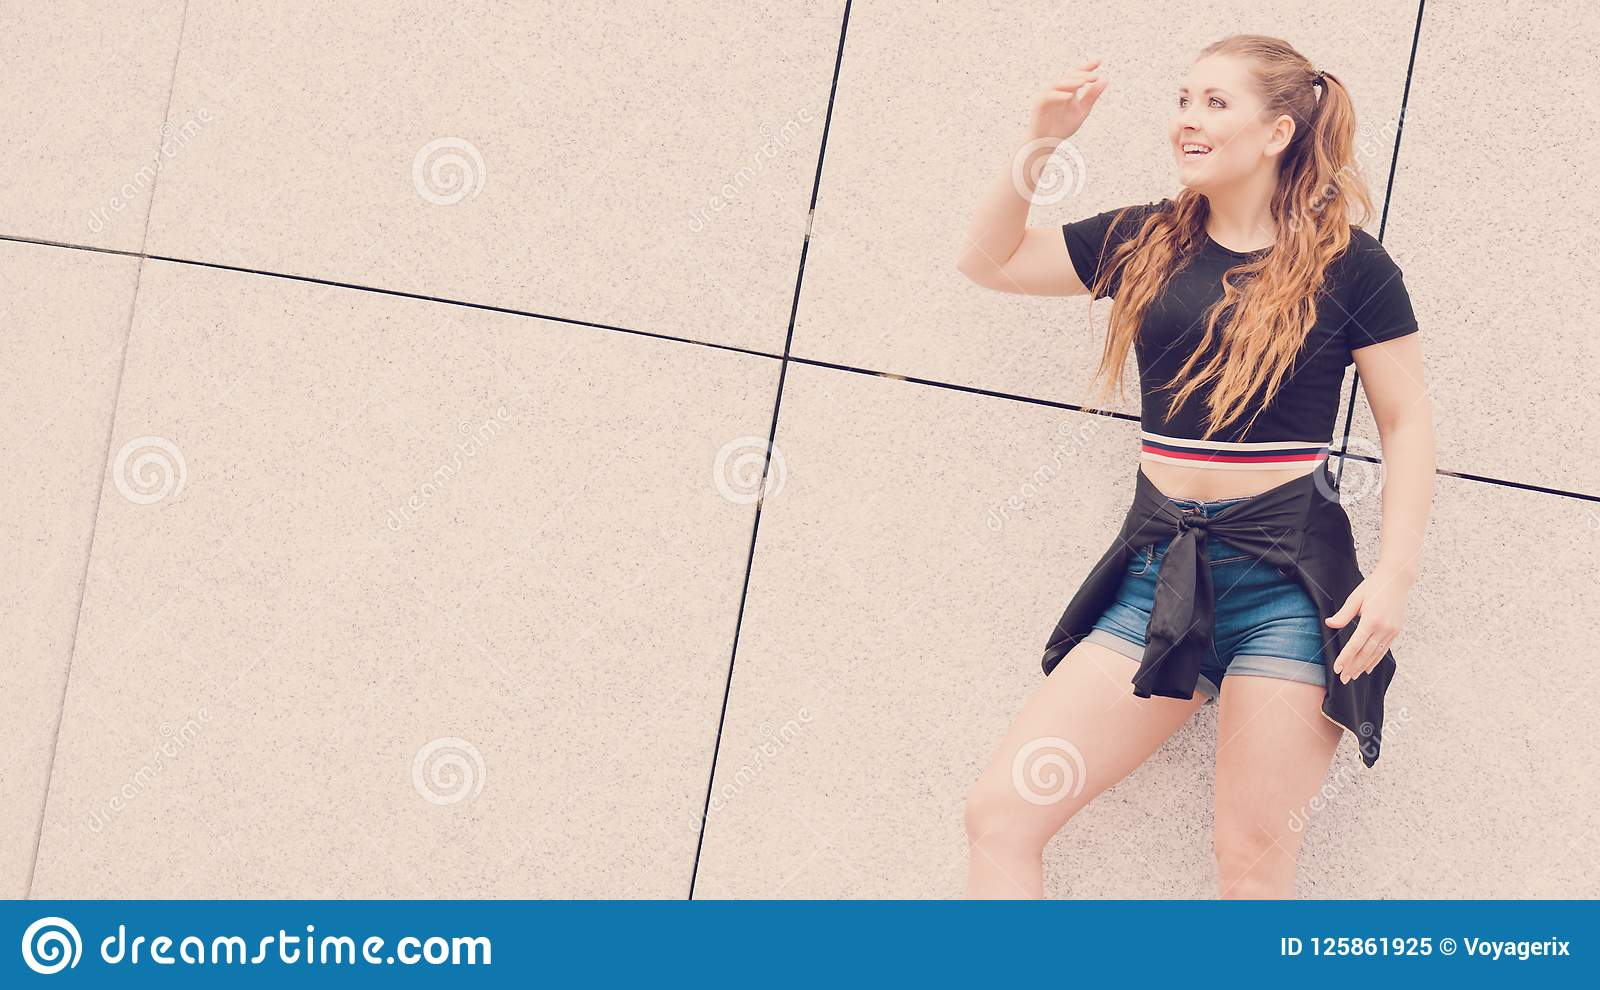 cdd3ad28e7c7 Young teenage woman wearing denim shorts and black crop top. Female  presenting fashionable summer outfit.